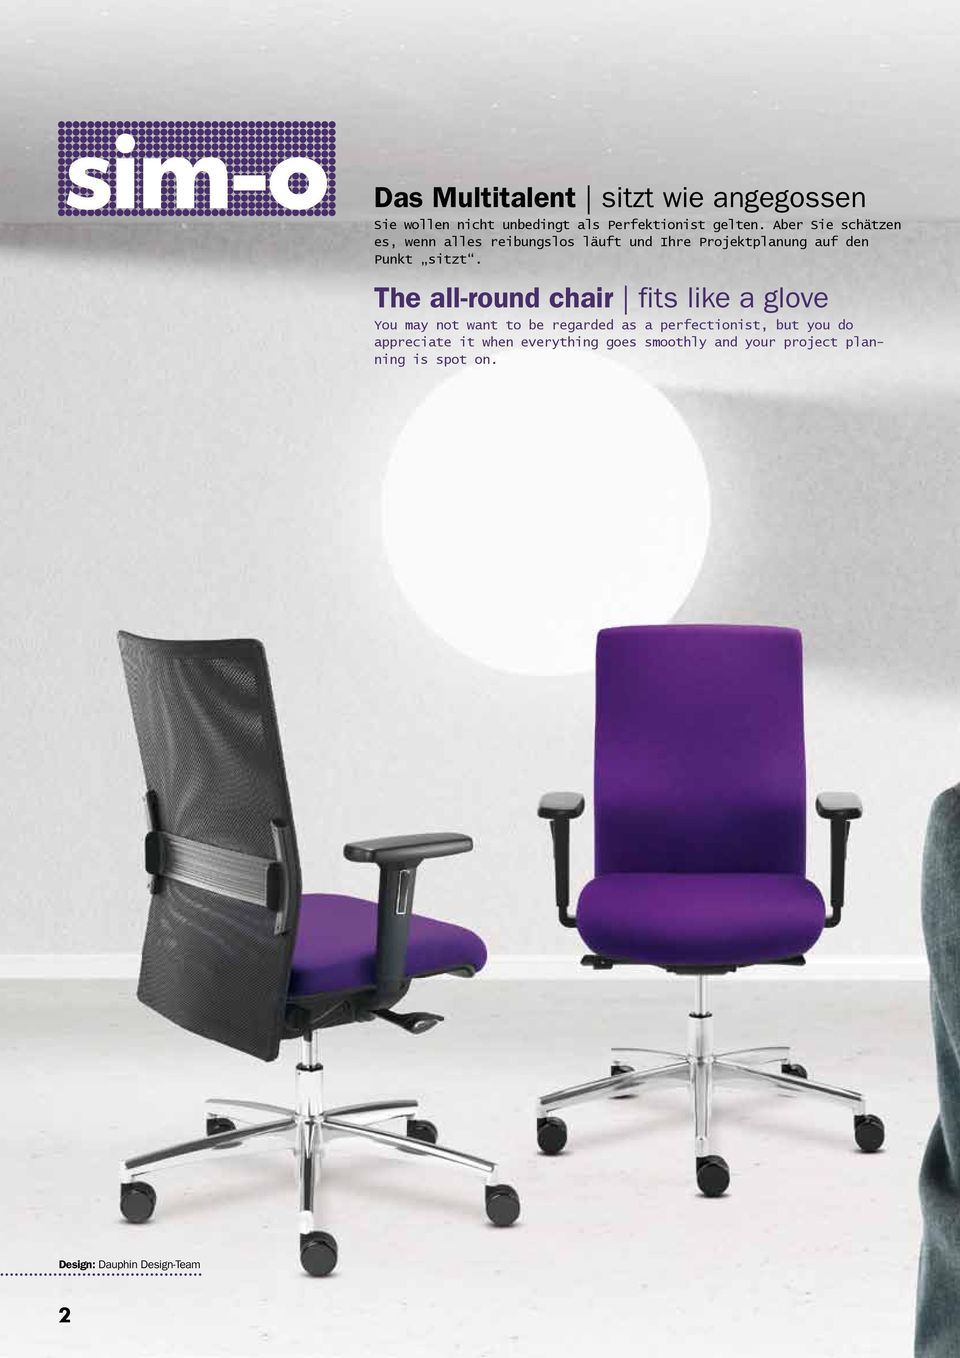 The all-round chair fits like a glove You may not want to be regarded as a perfectionist, but you do